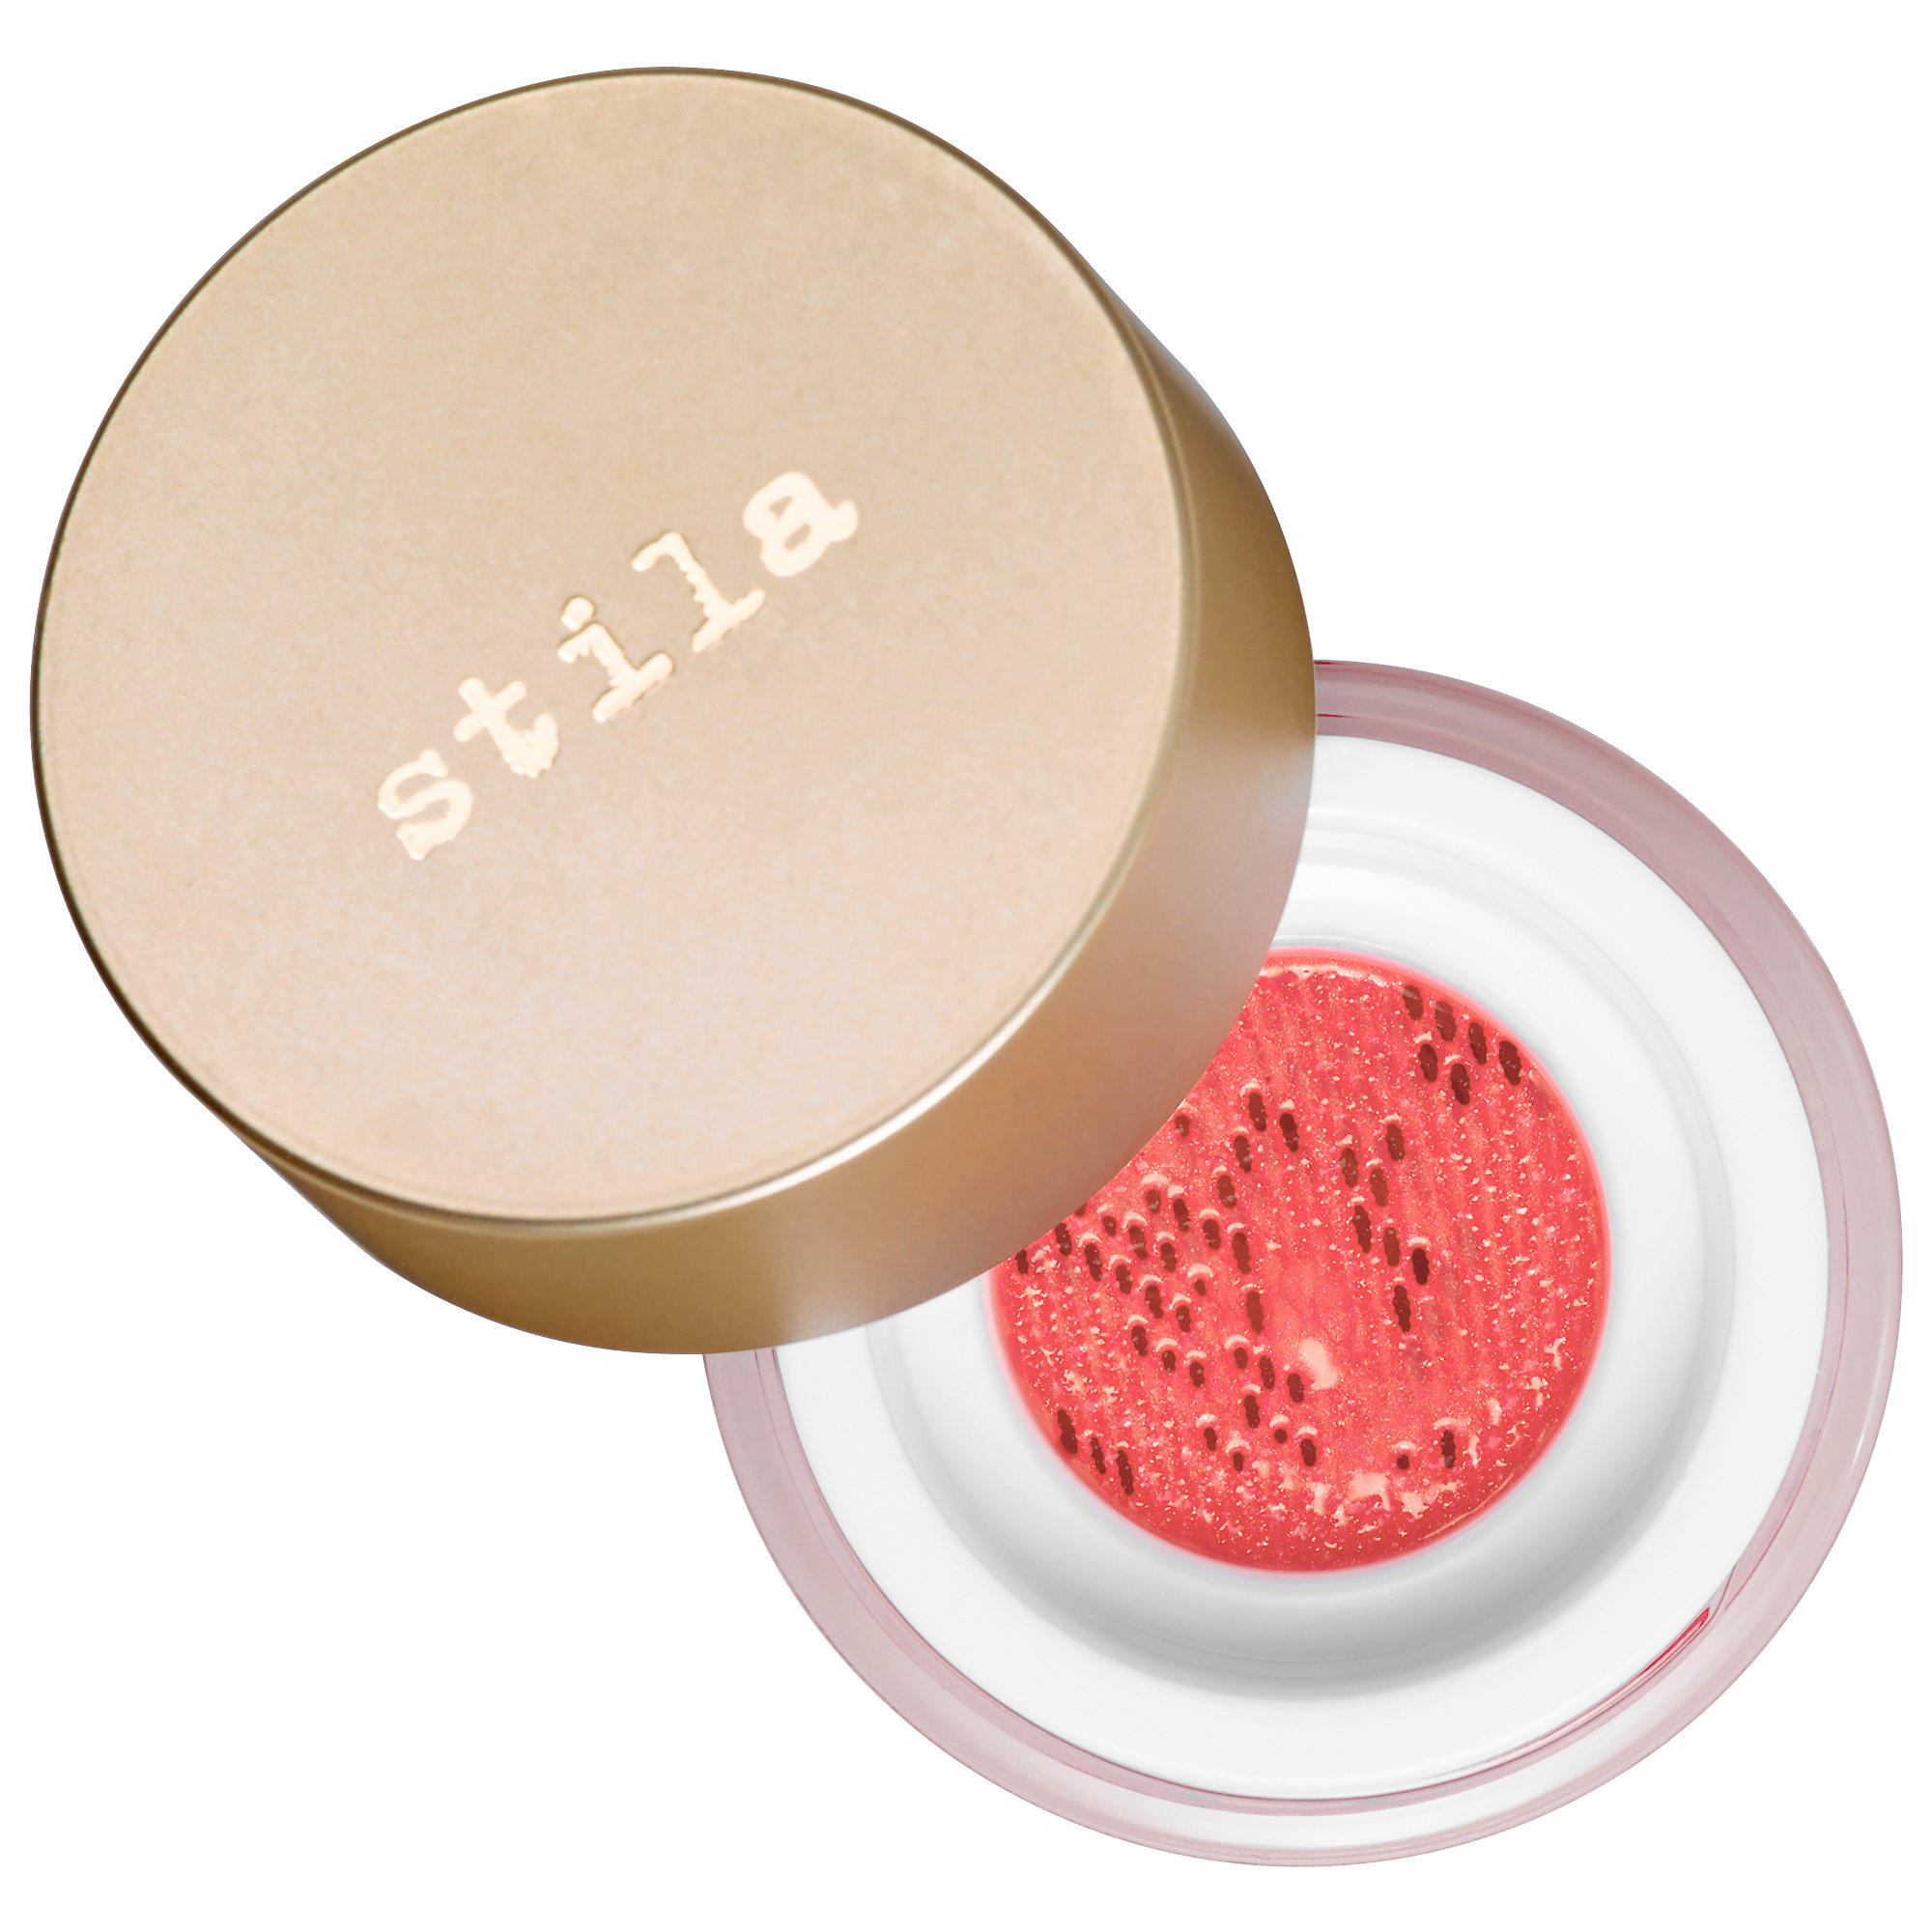 New ReleaseStila launched New Aqua Glow Watercolor Blush